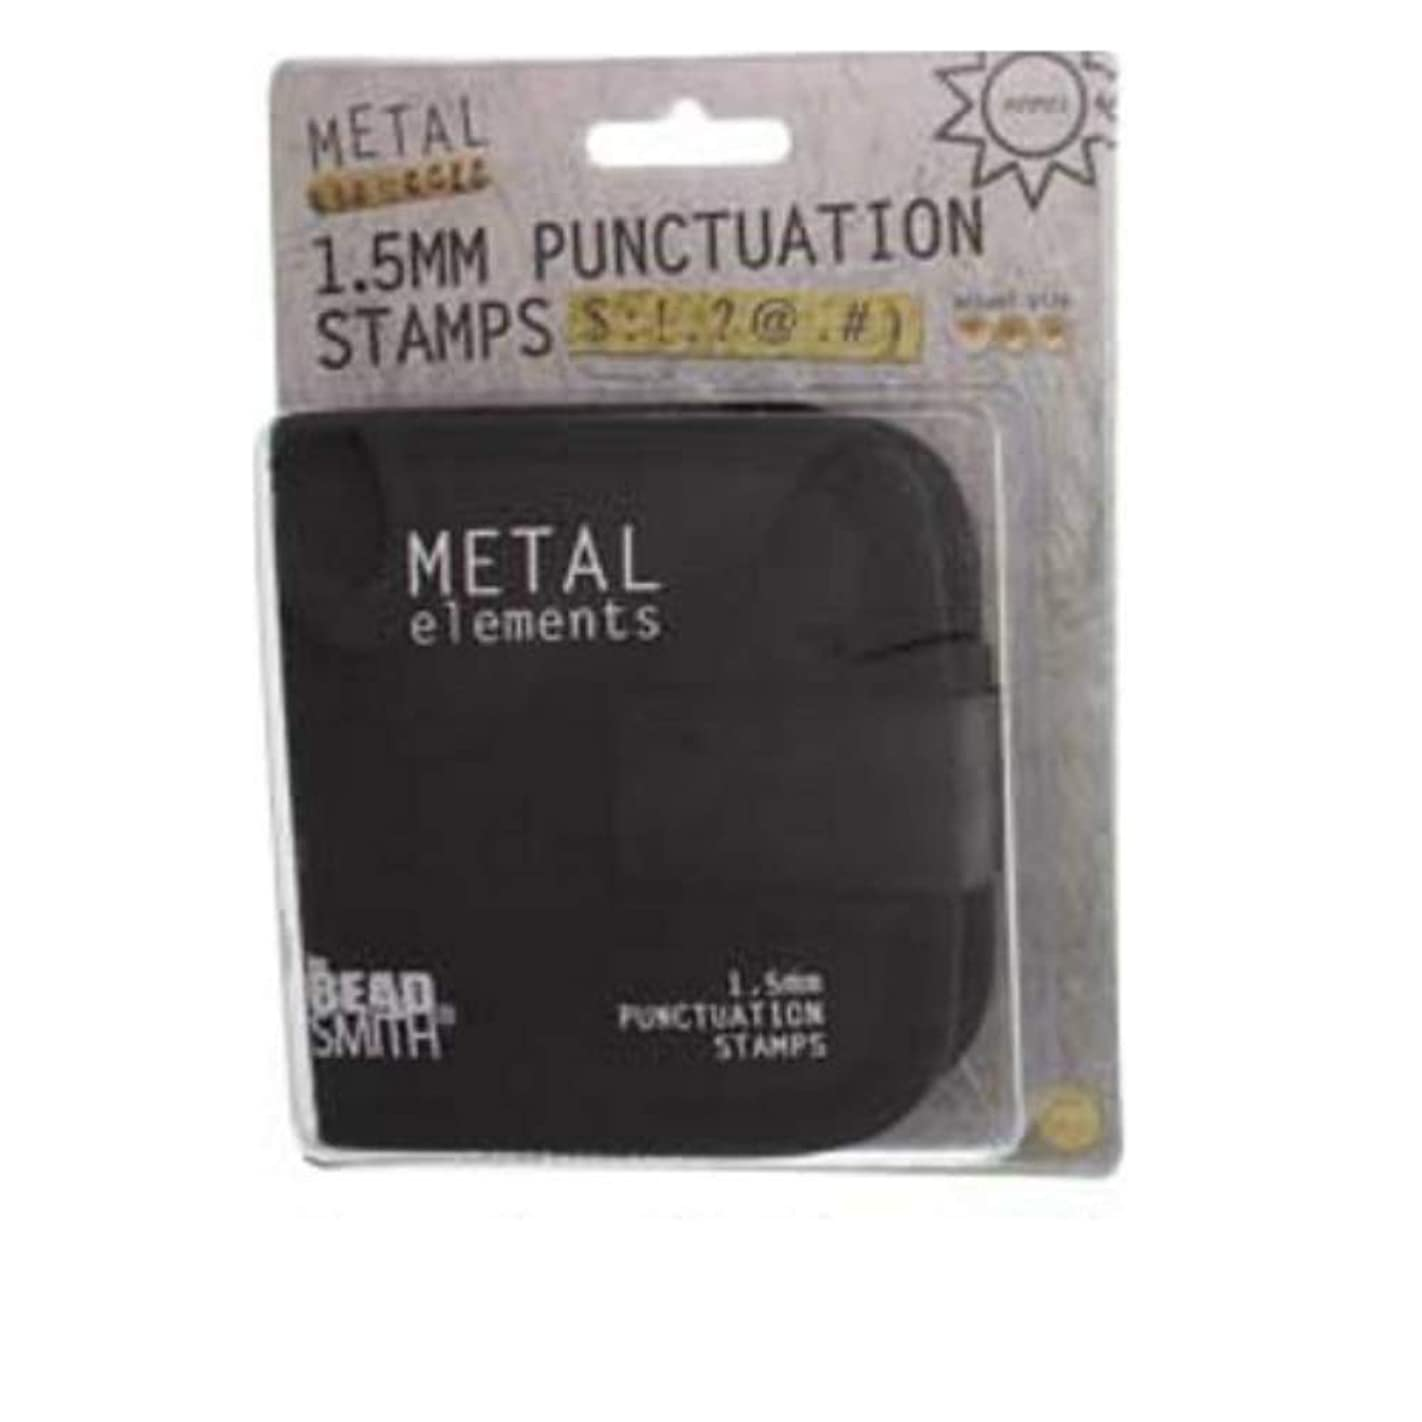 1.5mm Punctuation Stamps, 9 Pieces W/canvas Case - LPSPU15 v02528720840